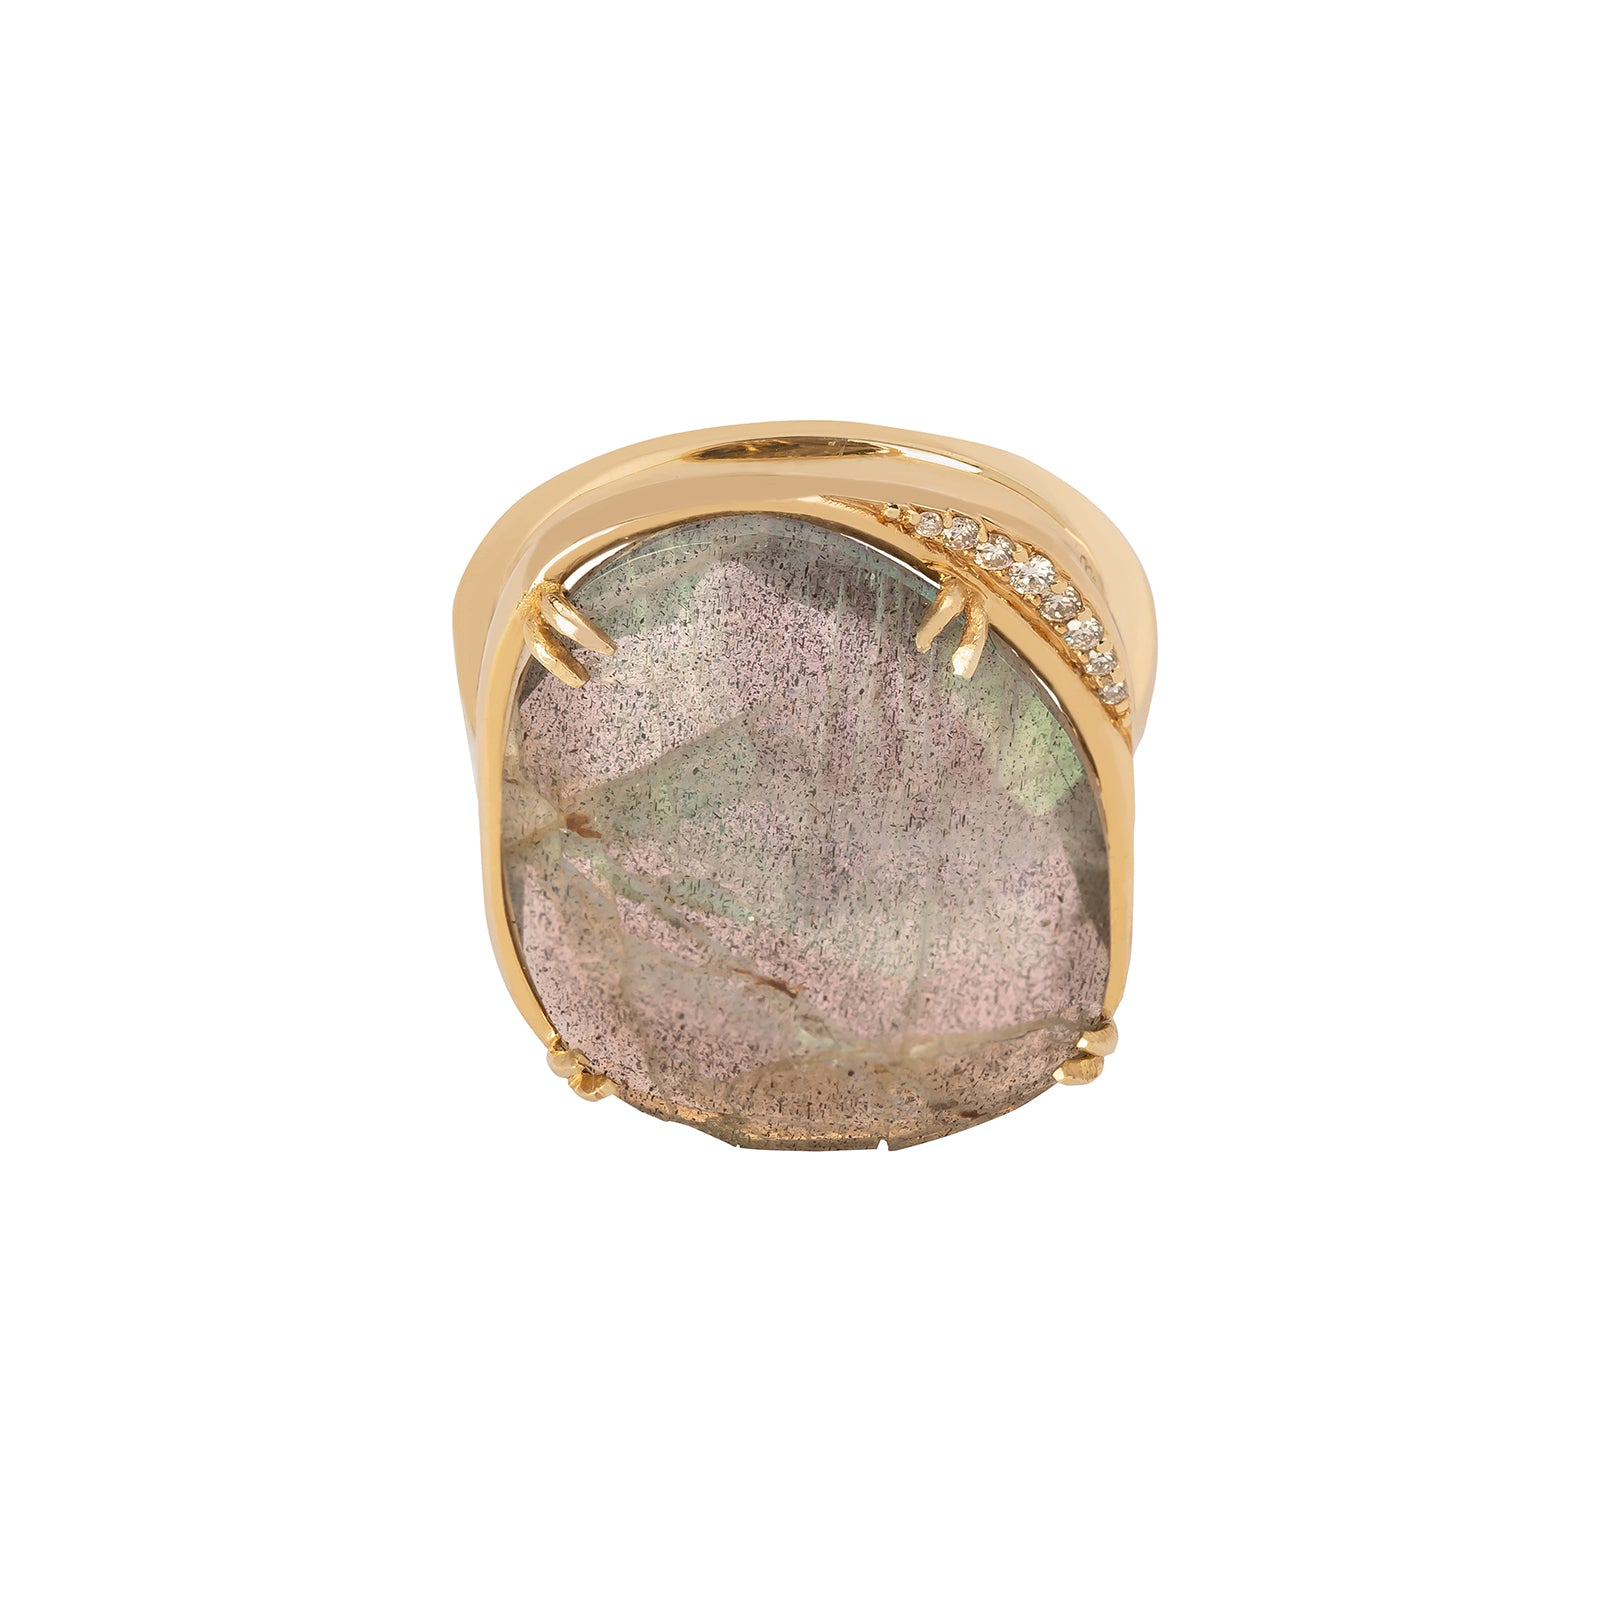 BaYou with Love Lunar Ring - Labradorite - Rings - Broken English Jewelry